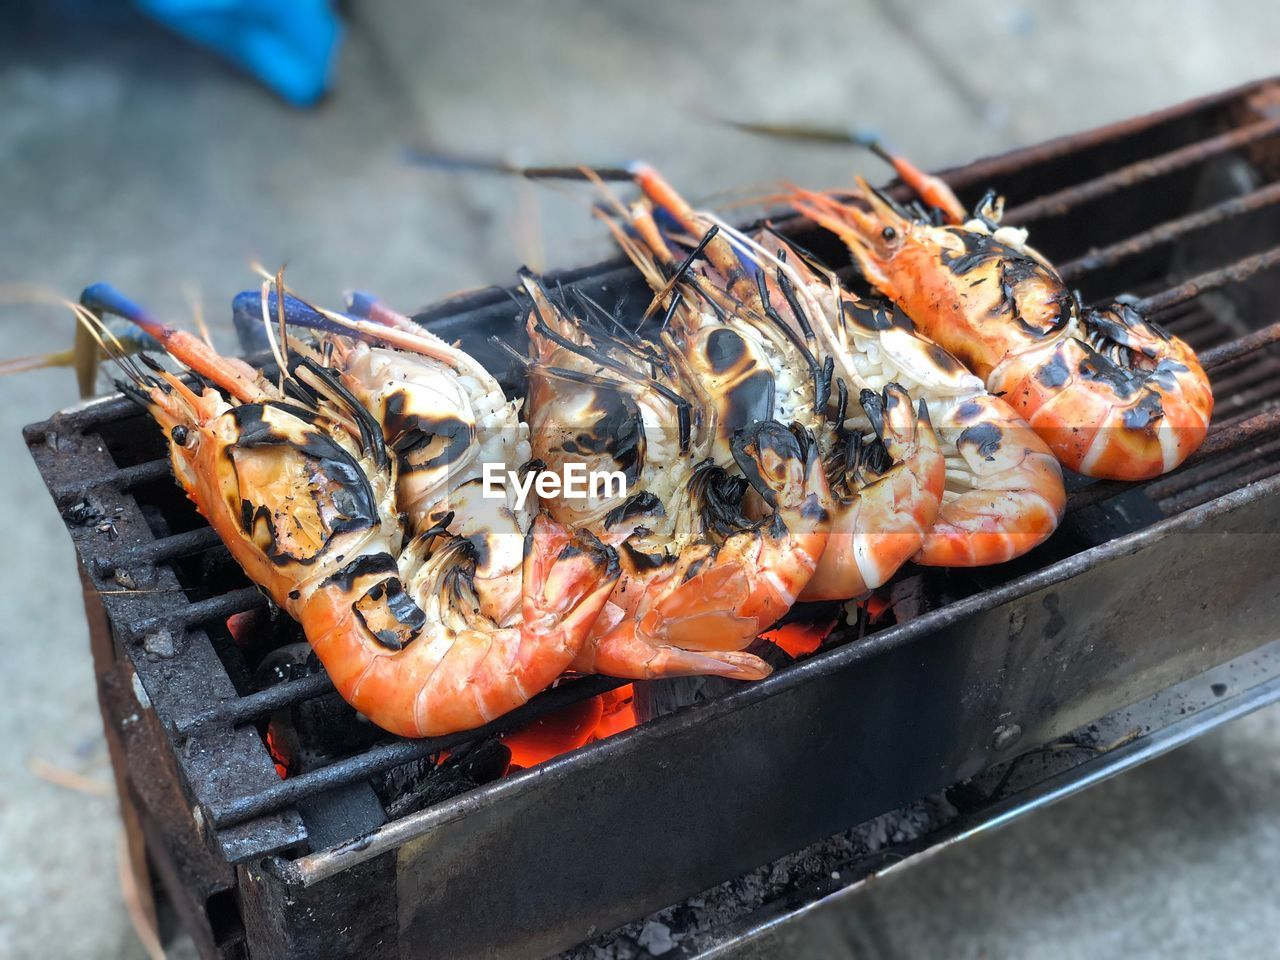 food, food and drink, barbecue, seafood, freshness, barbecue grill, heat - temperature, healthy eating, grilled, wellbeing, no people, preparation, high angle view, close-up, burning, crustacean, day, fire, meat, fire - natural phenomenon, outdoors, preparing food